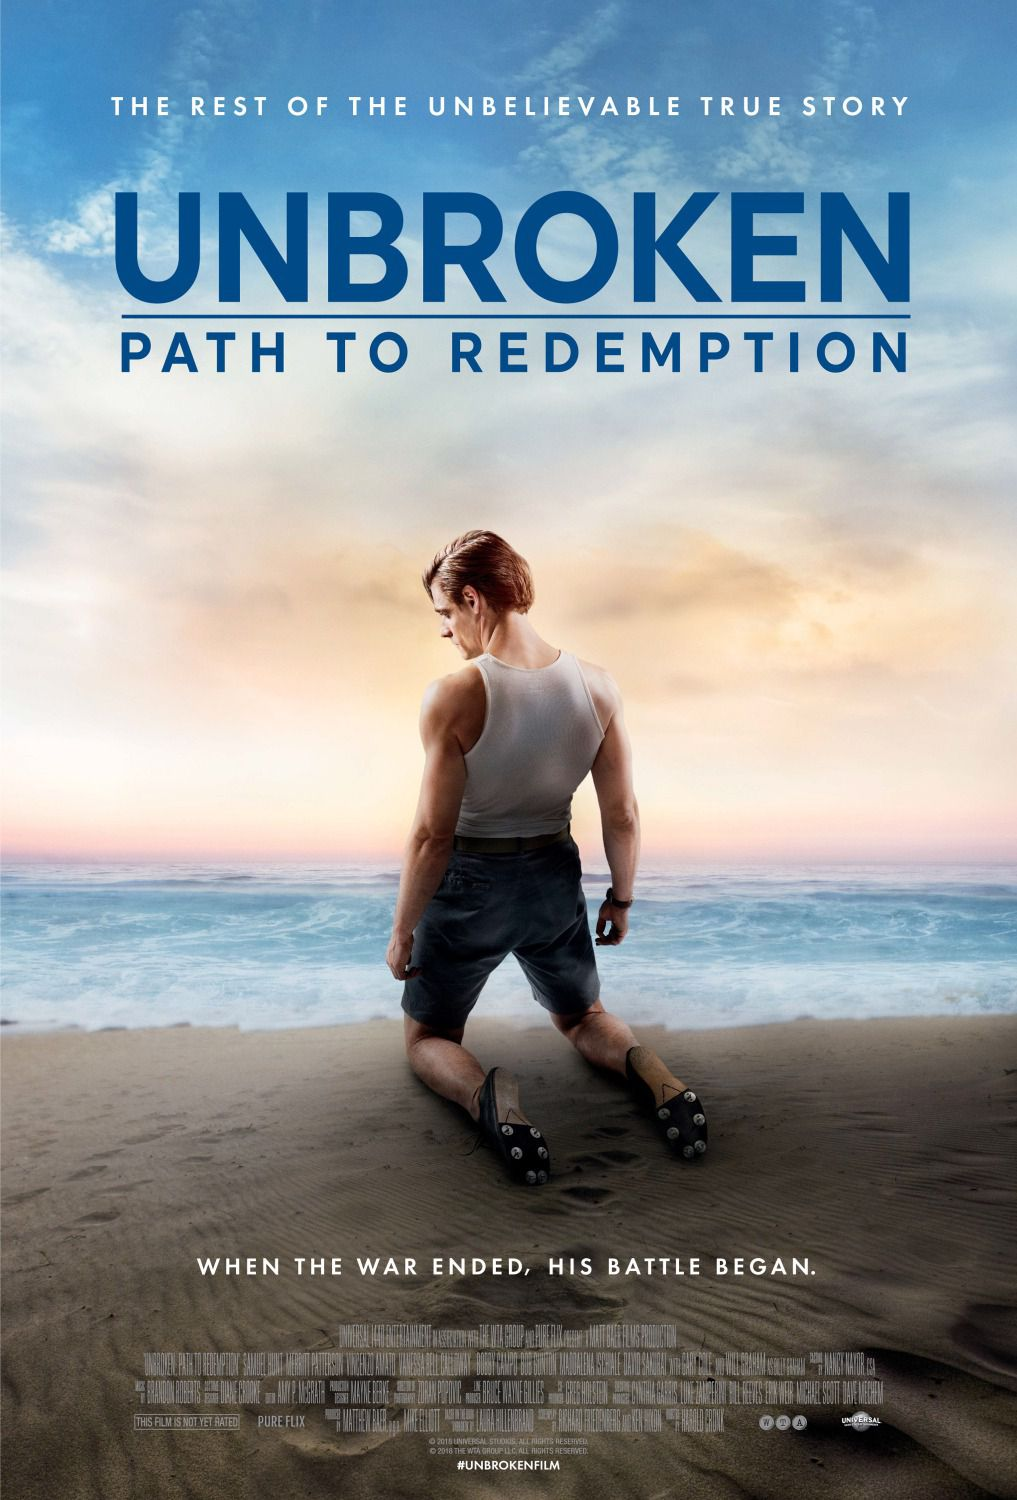 Unbroken path to Redemption - When the war ended, his battle began - the rest of unbelievable true story - film poster